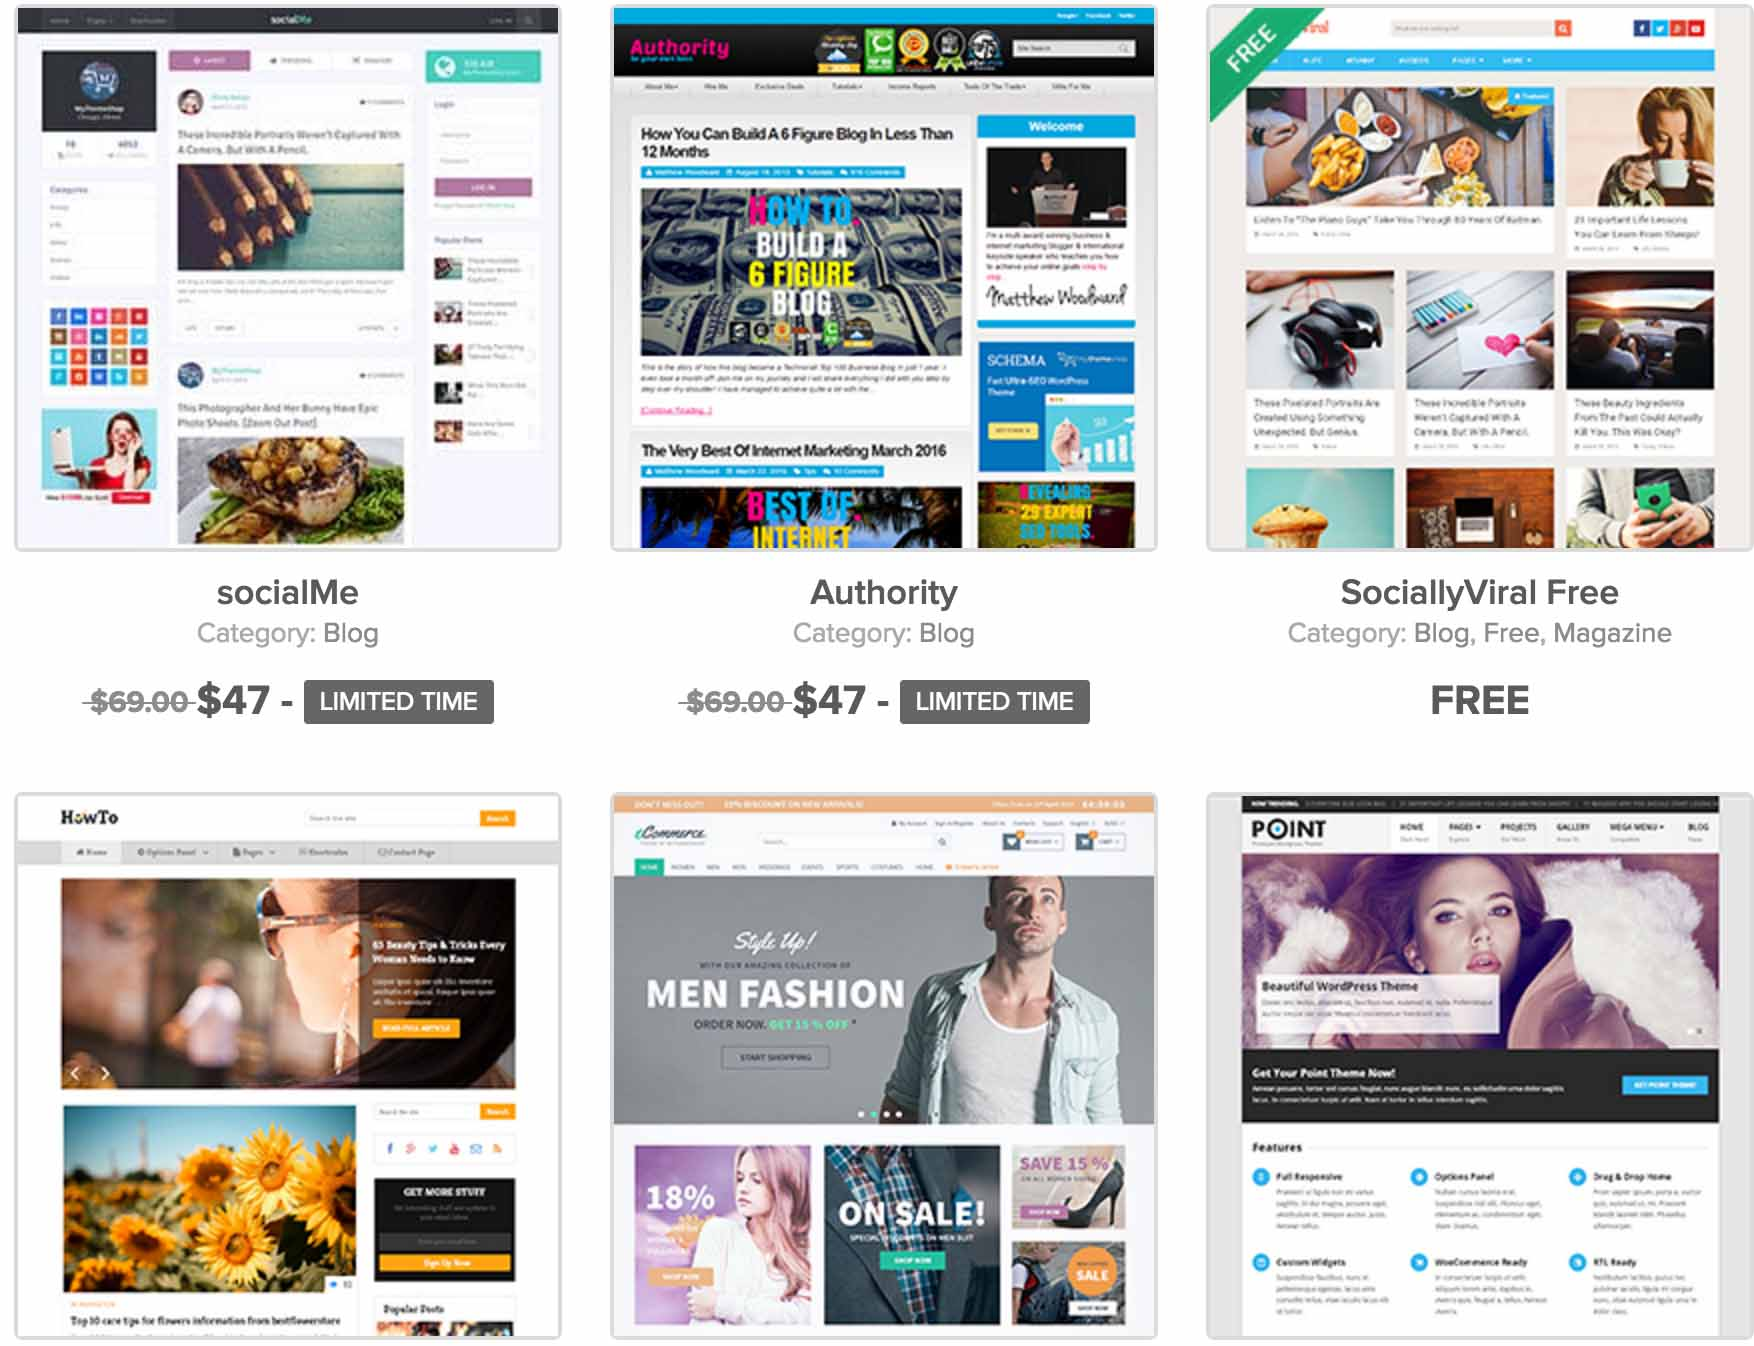 mythemeshop coupons and deals